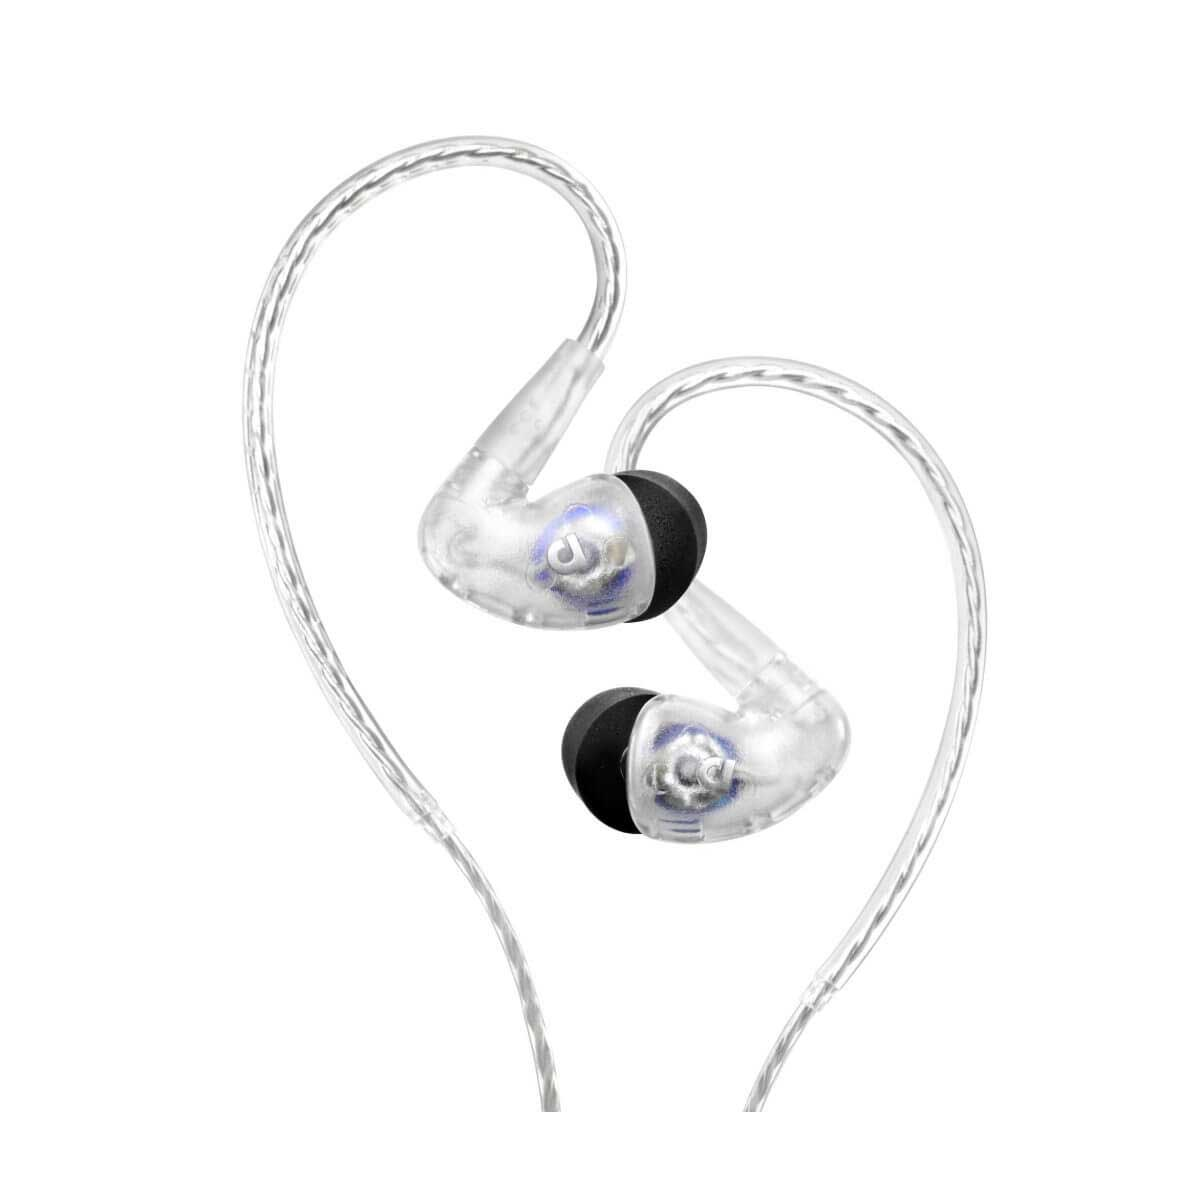 Audiofly AF100 Universal In-Ear Monitor w/ fixed cable - Clear